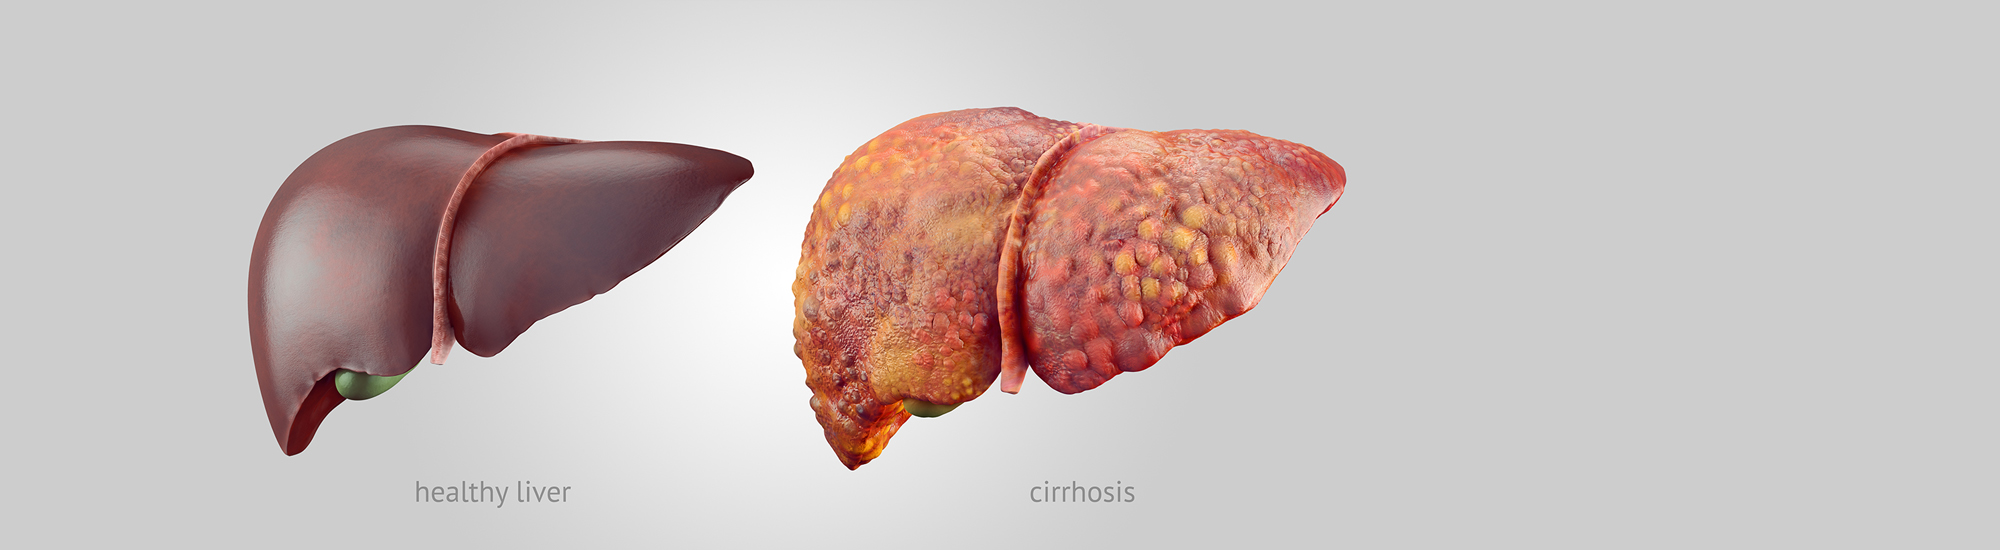 Ayurvedic treatment for Liver Cirrhosis References